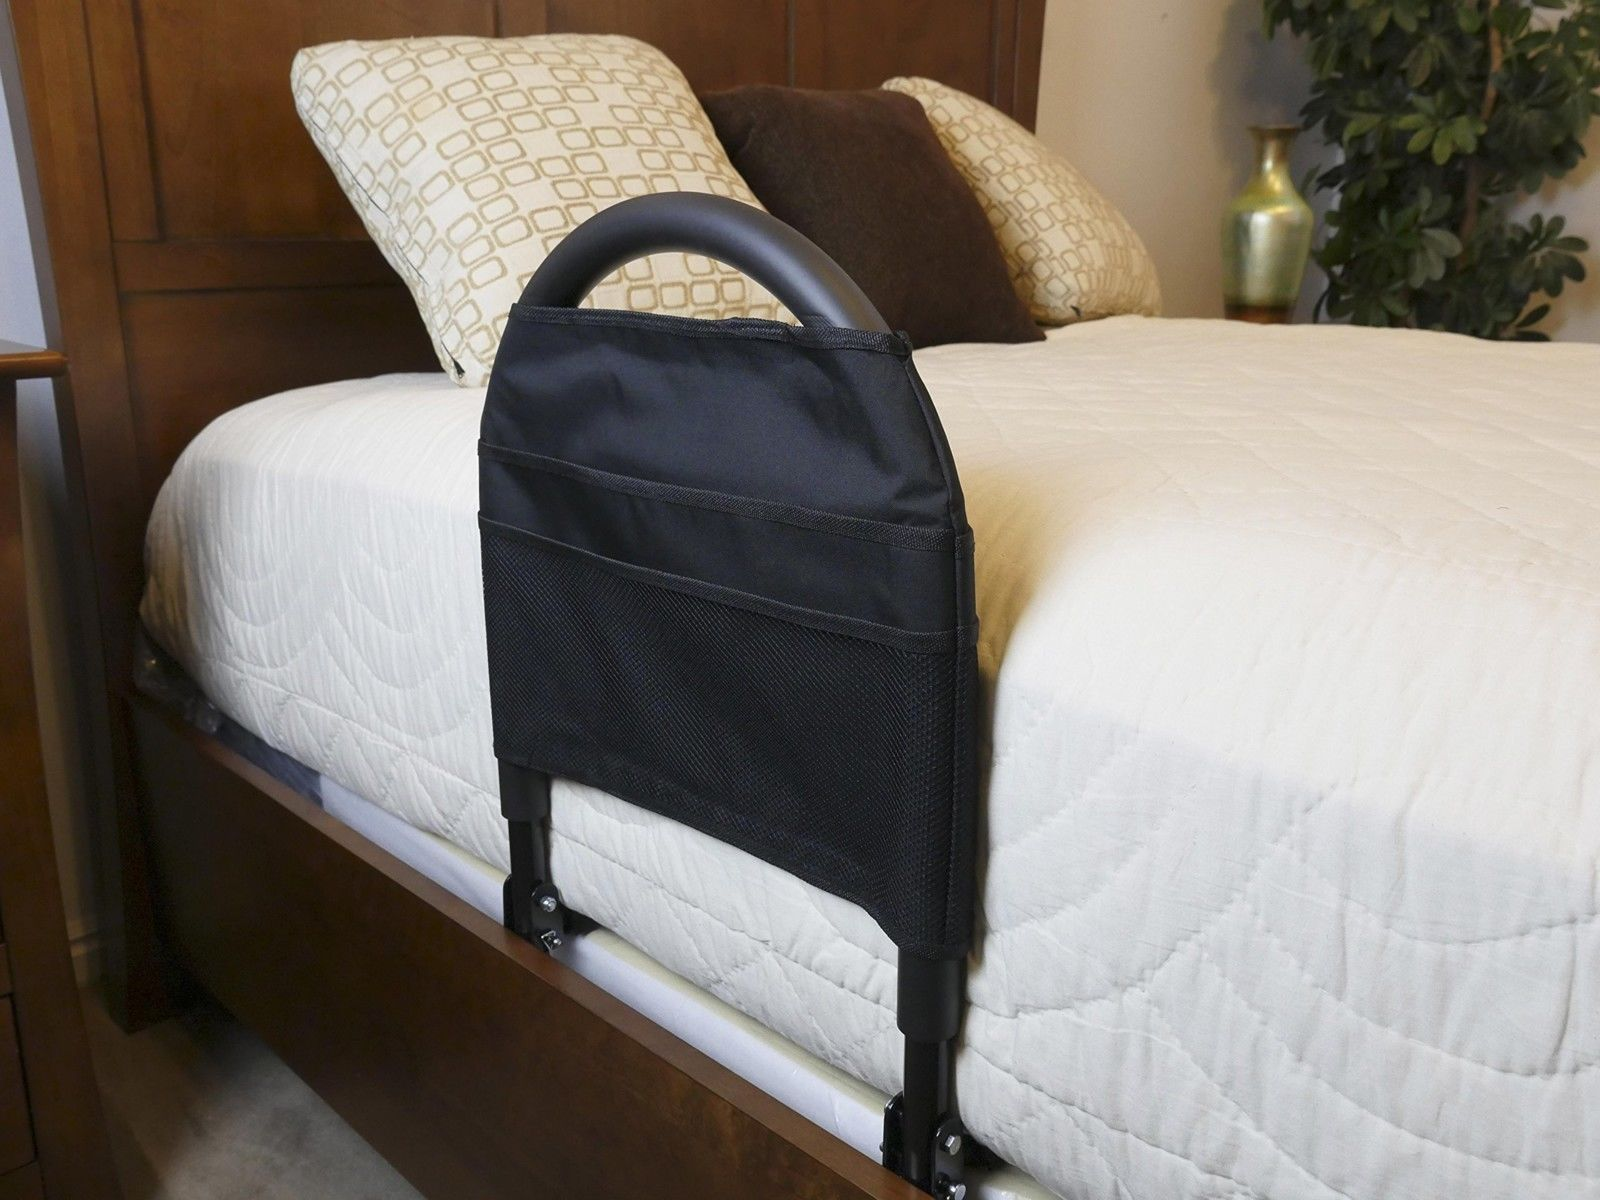 Bed Assist Side Handle Safety Grab Bar Rail and similar items